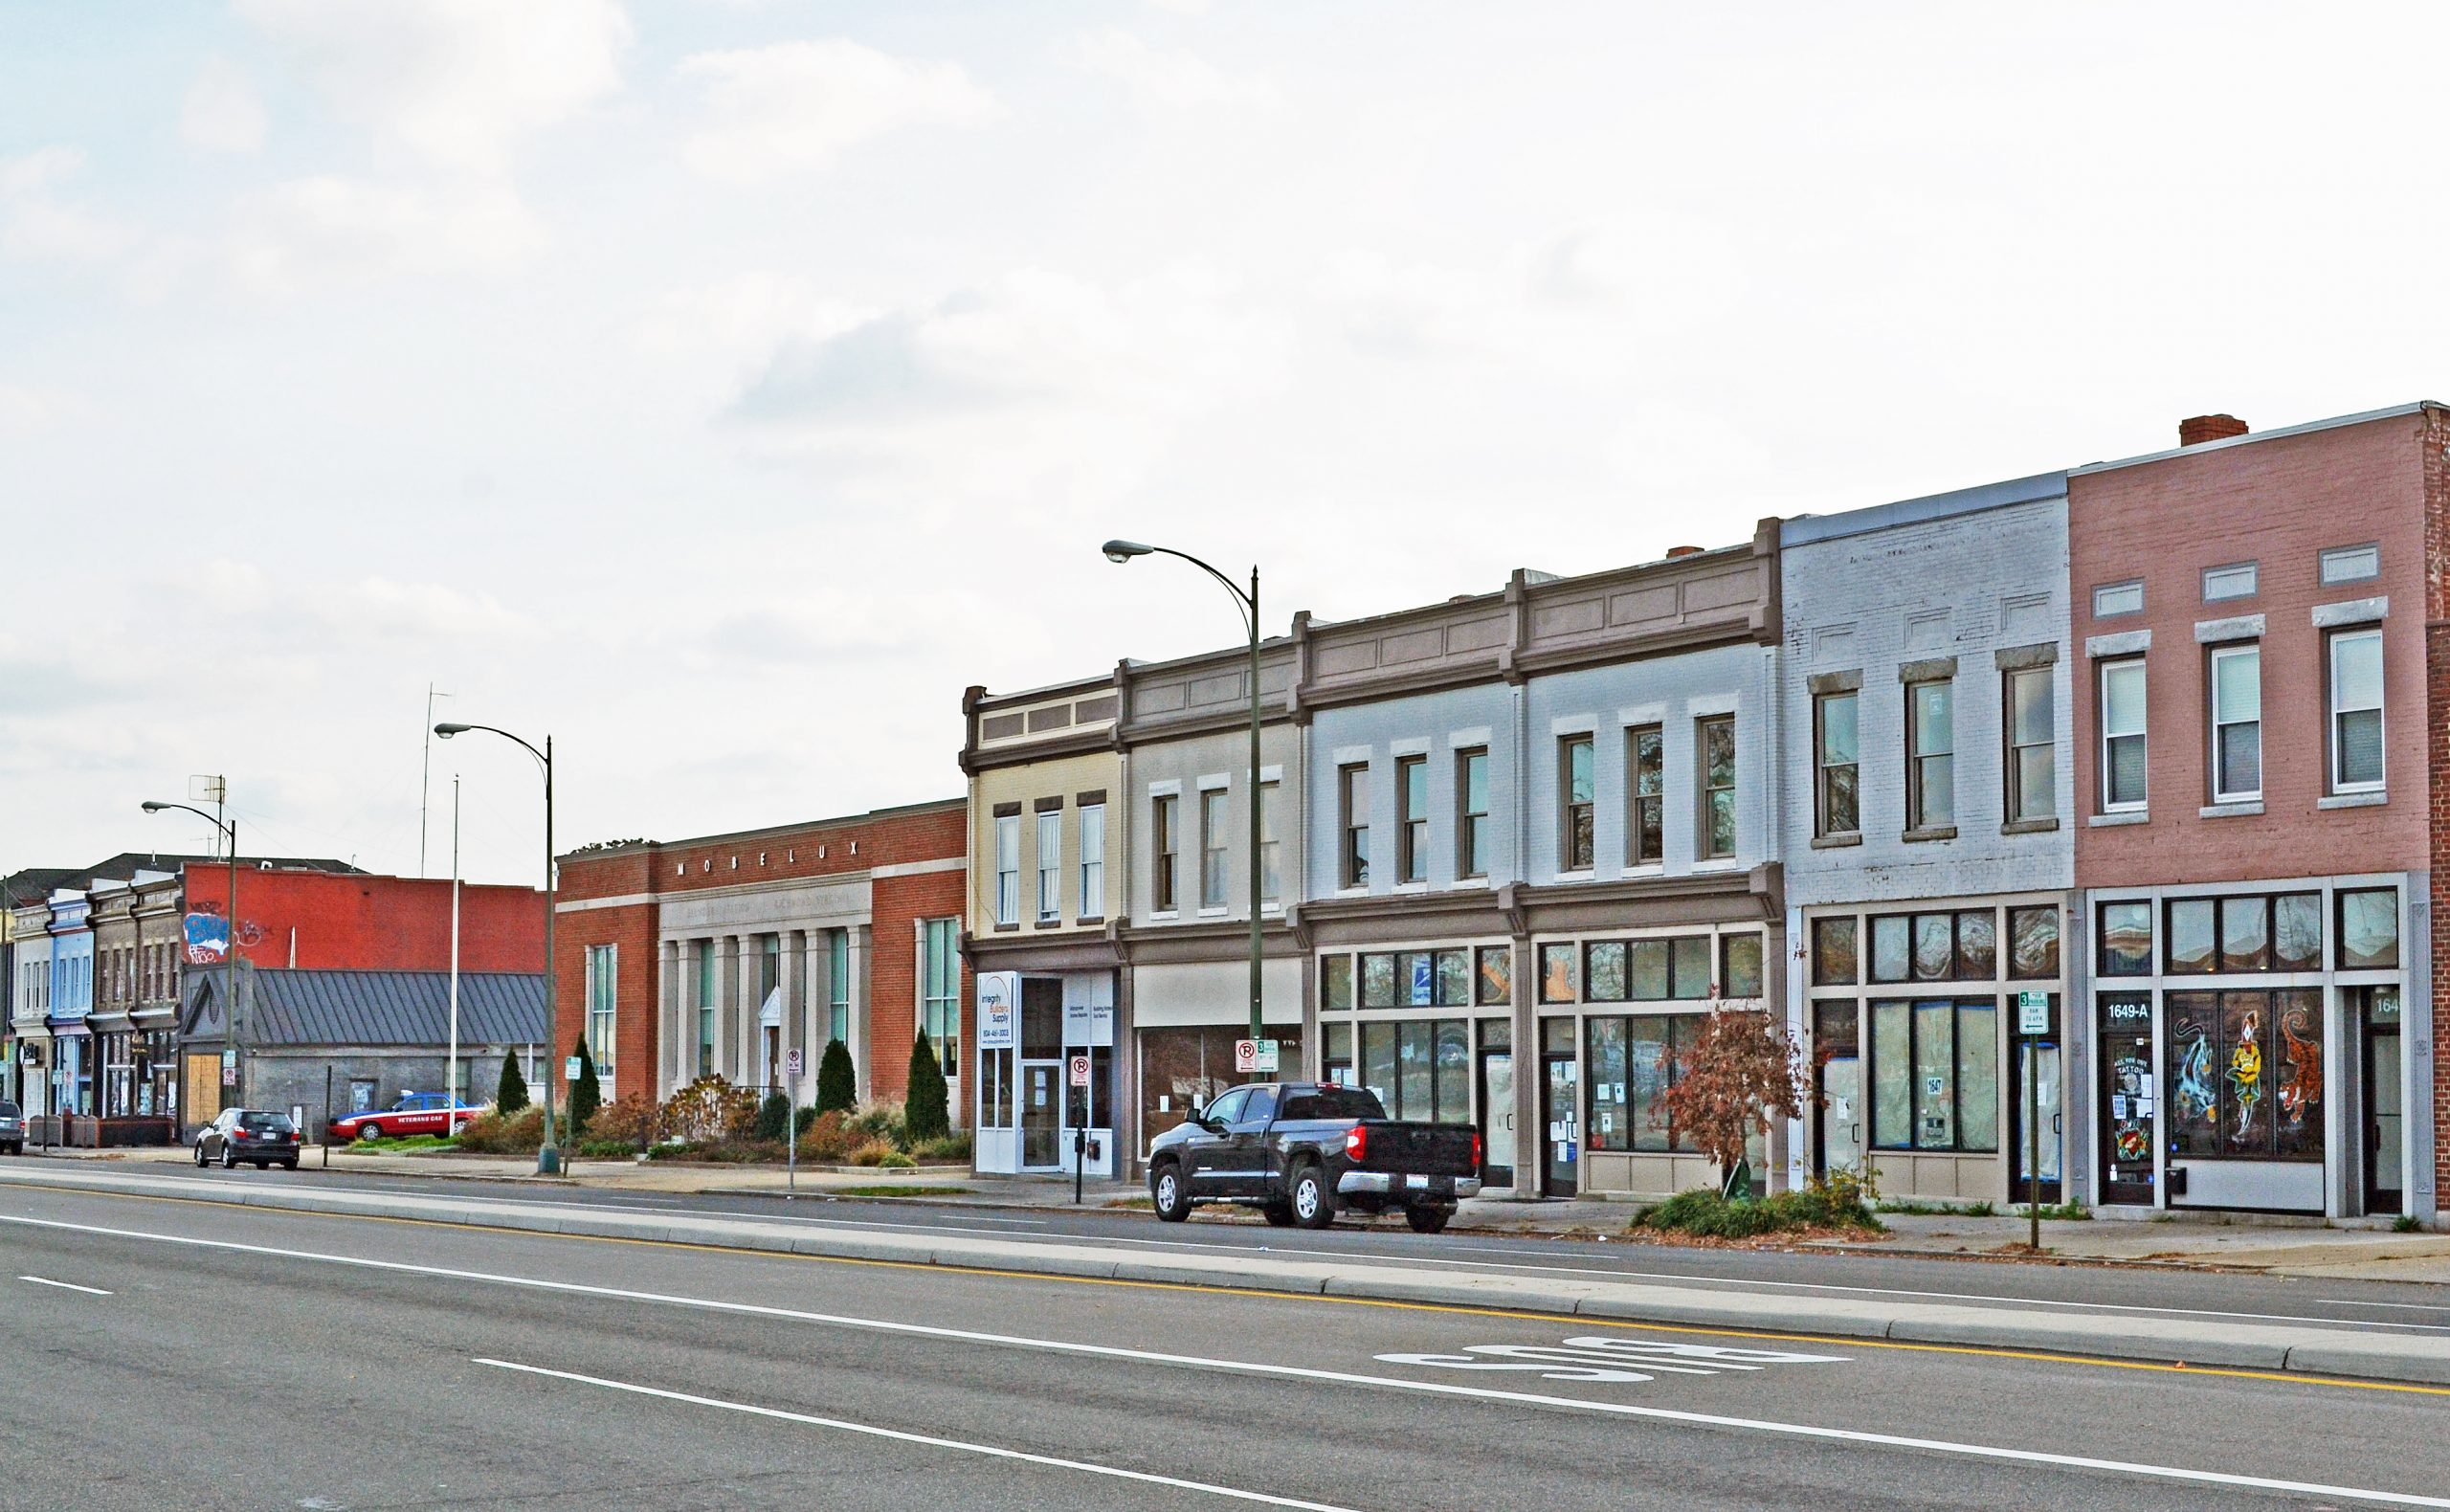 West Broad Street Commercial Historic District